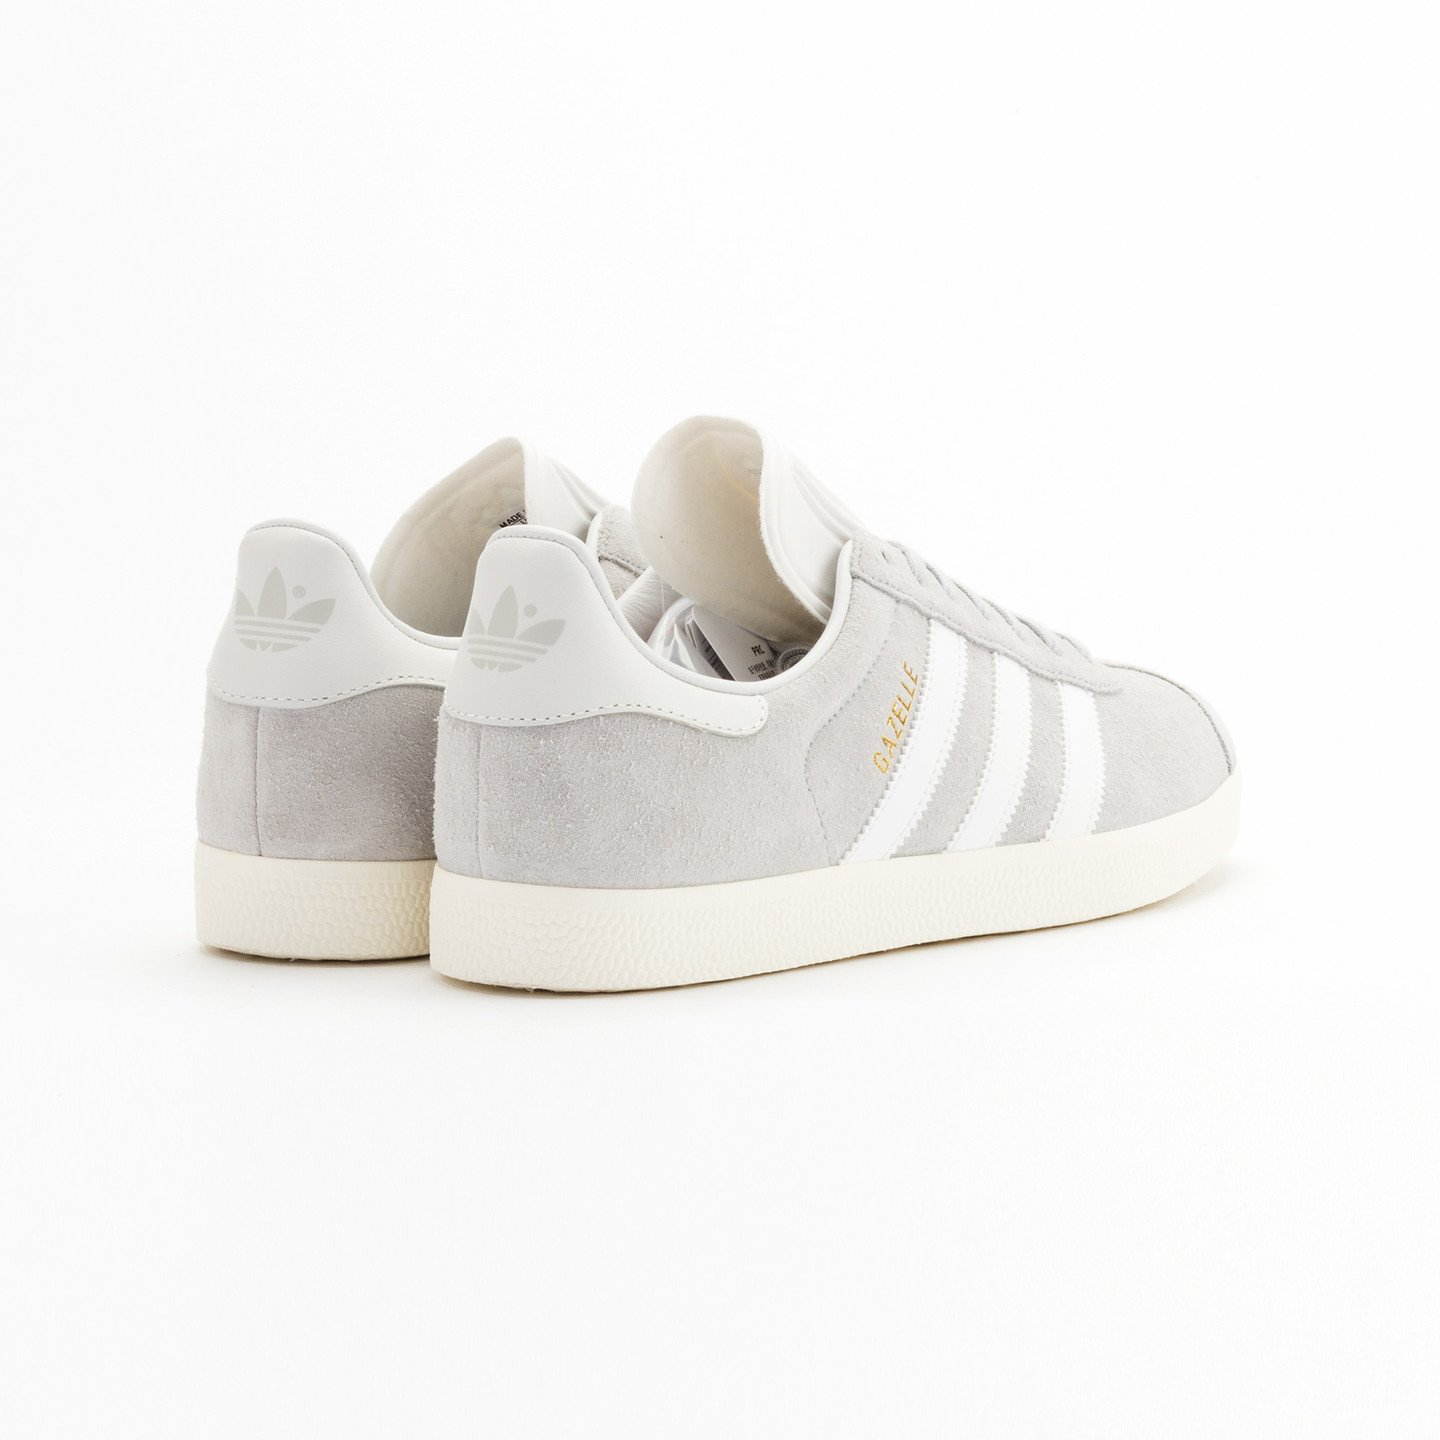 Adidas Gazelle Clear Onyx / White / Gold Metallic S76221-41.33